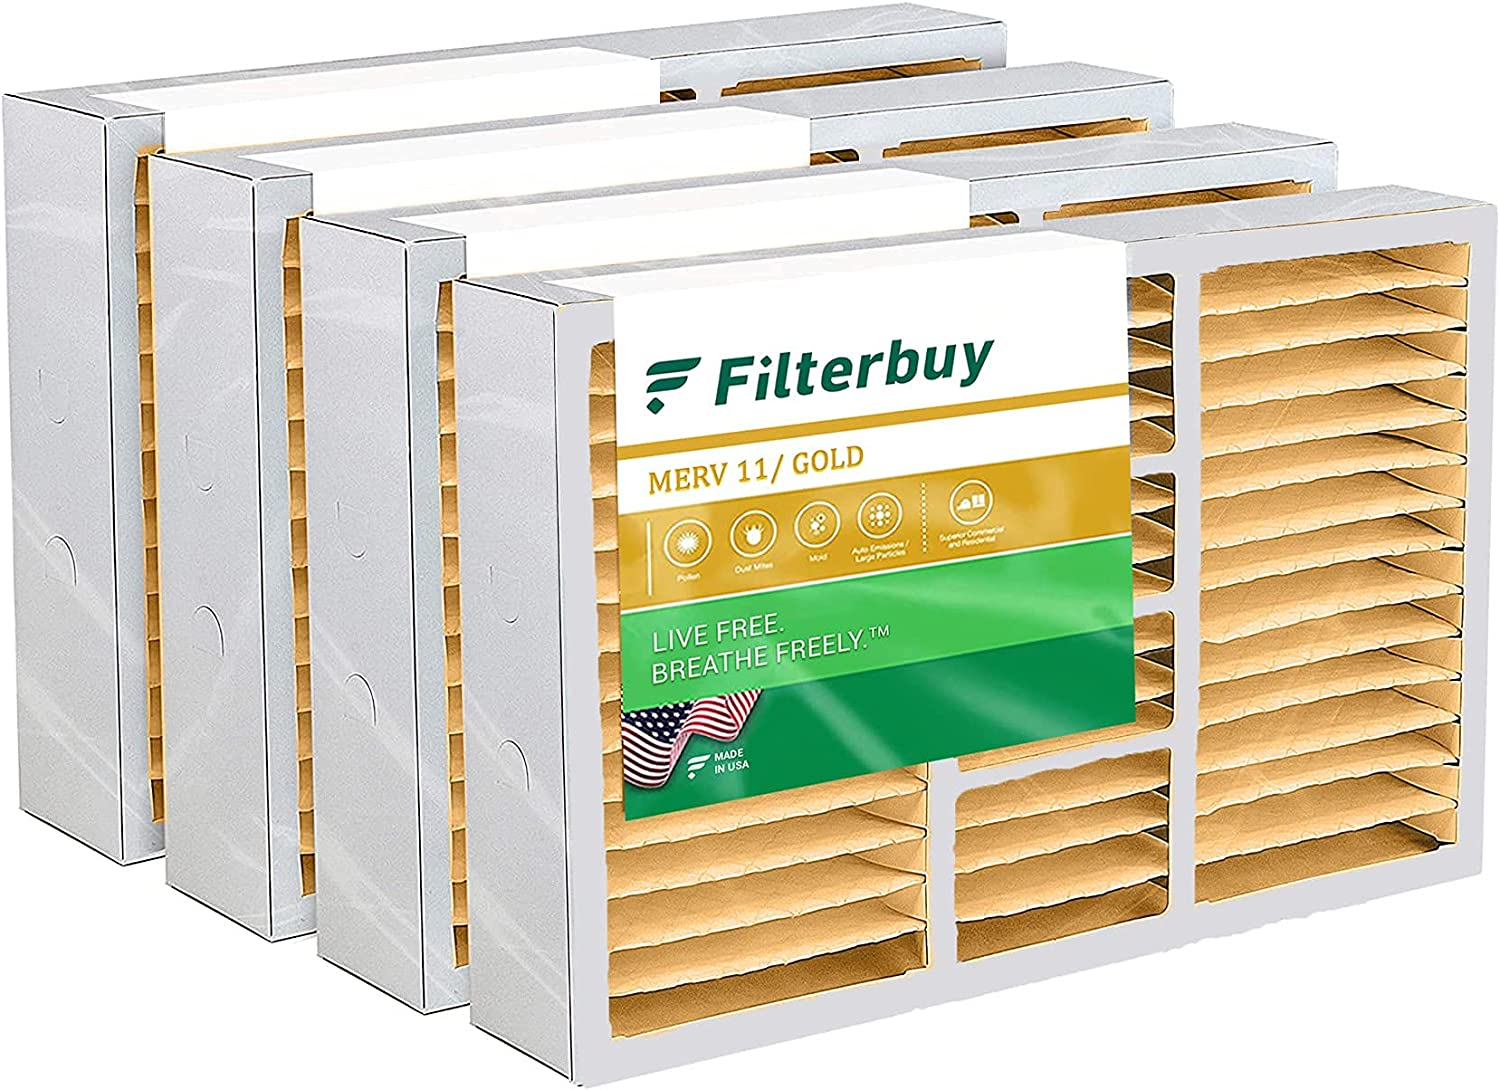 FilterBuy 20x25x5 Manufacturer OFFicial shop Air Filter 4-Pack MERV 11 Pleated Max 77% OFF Replacem